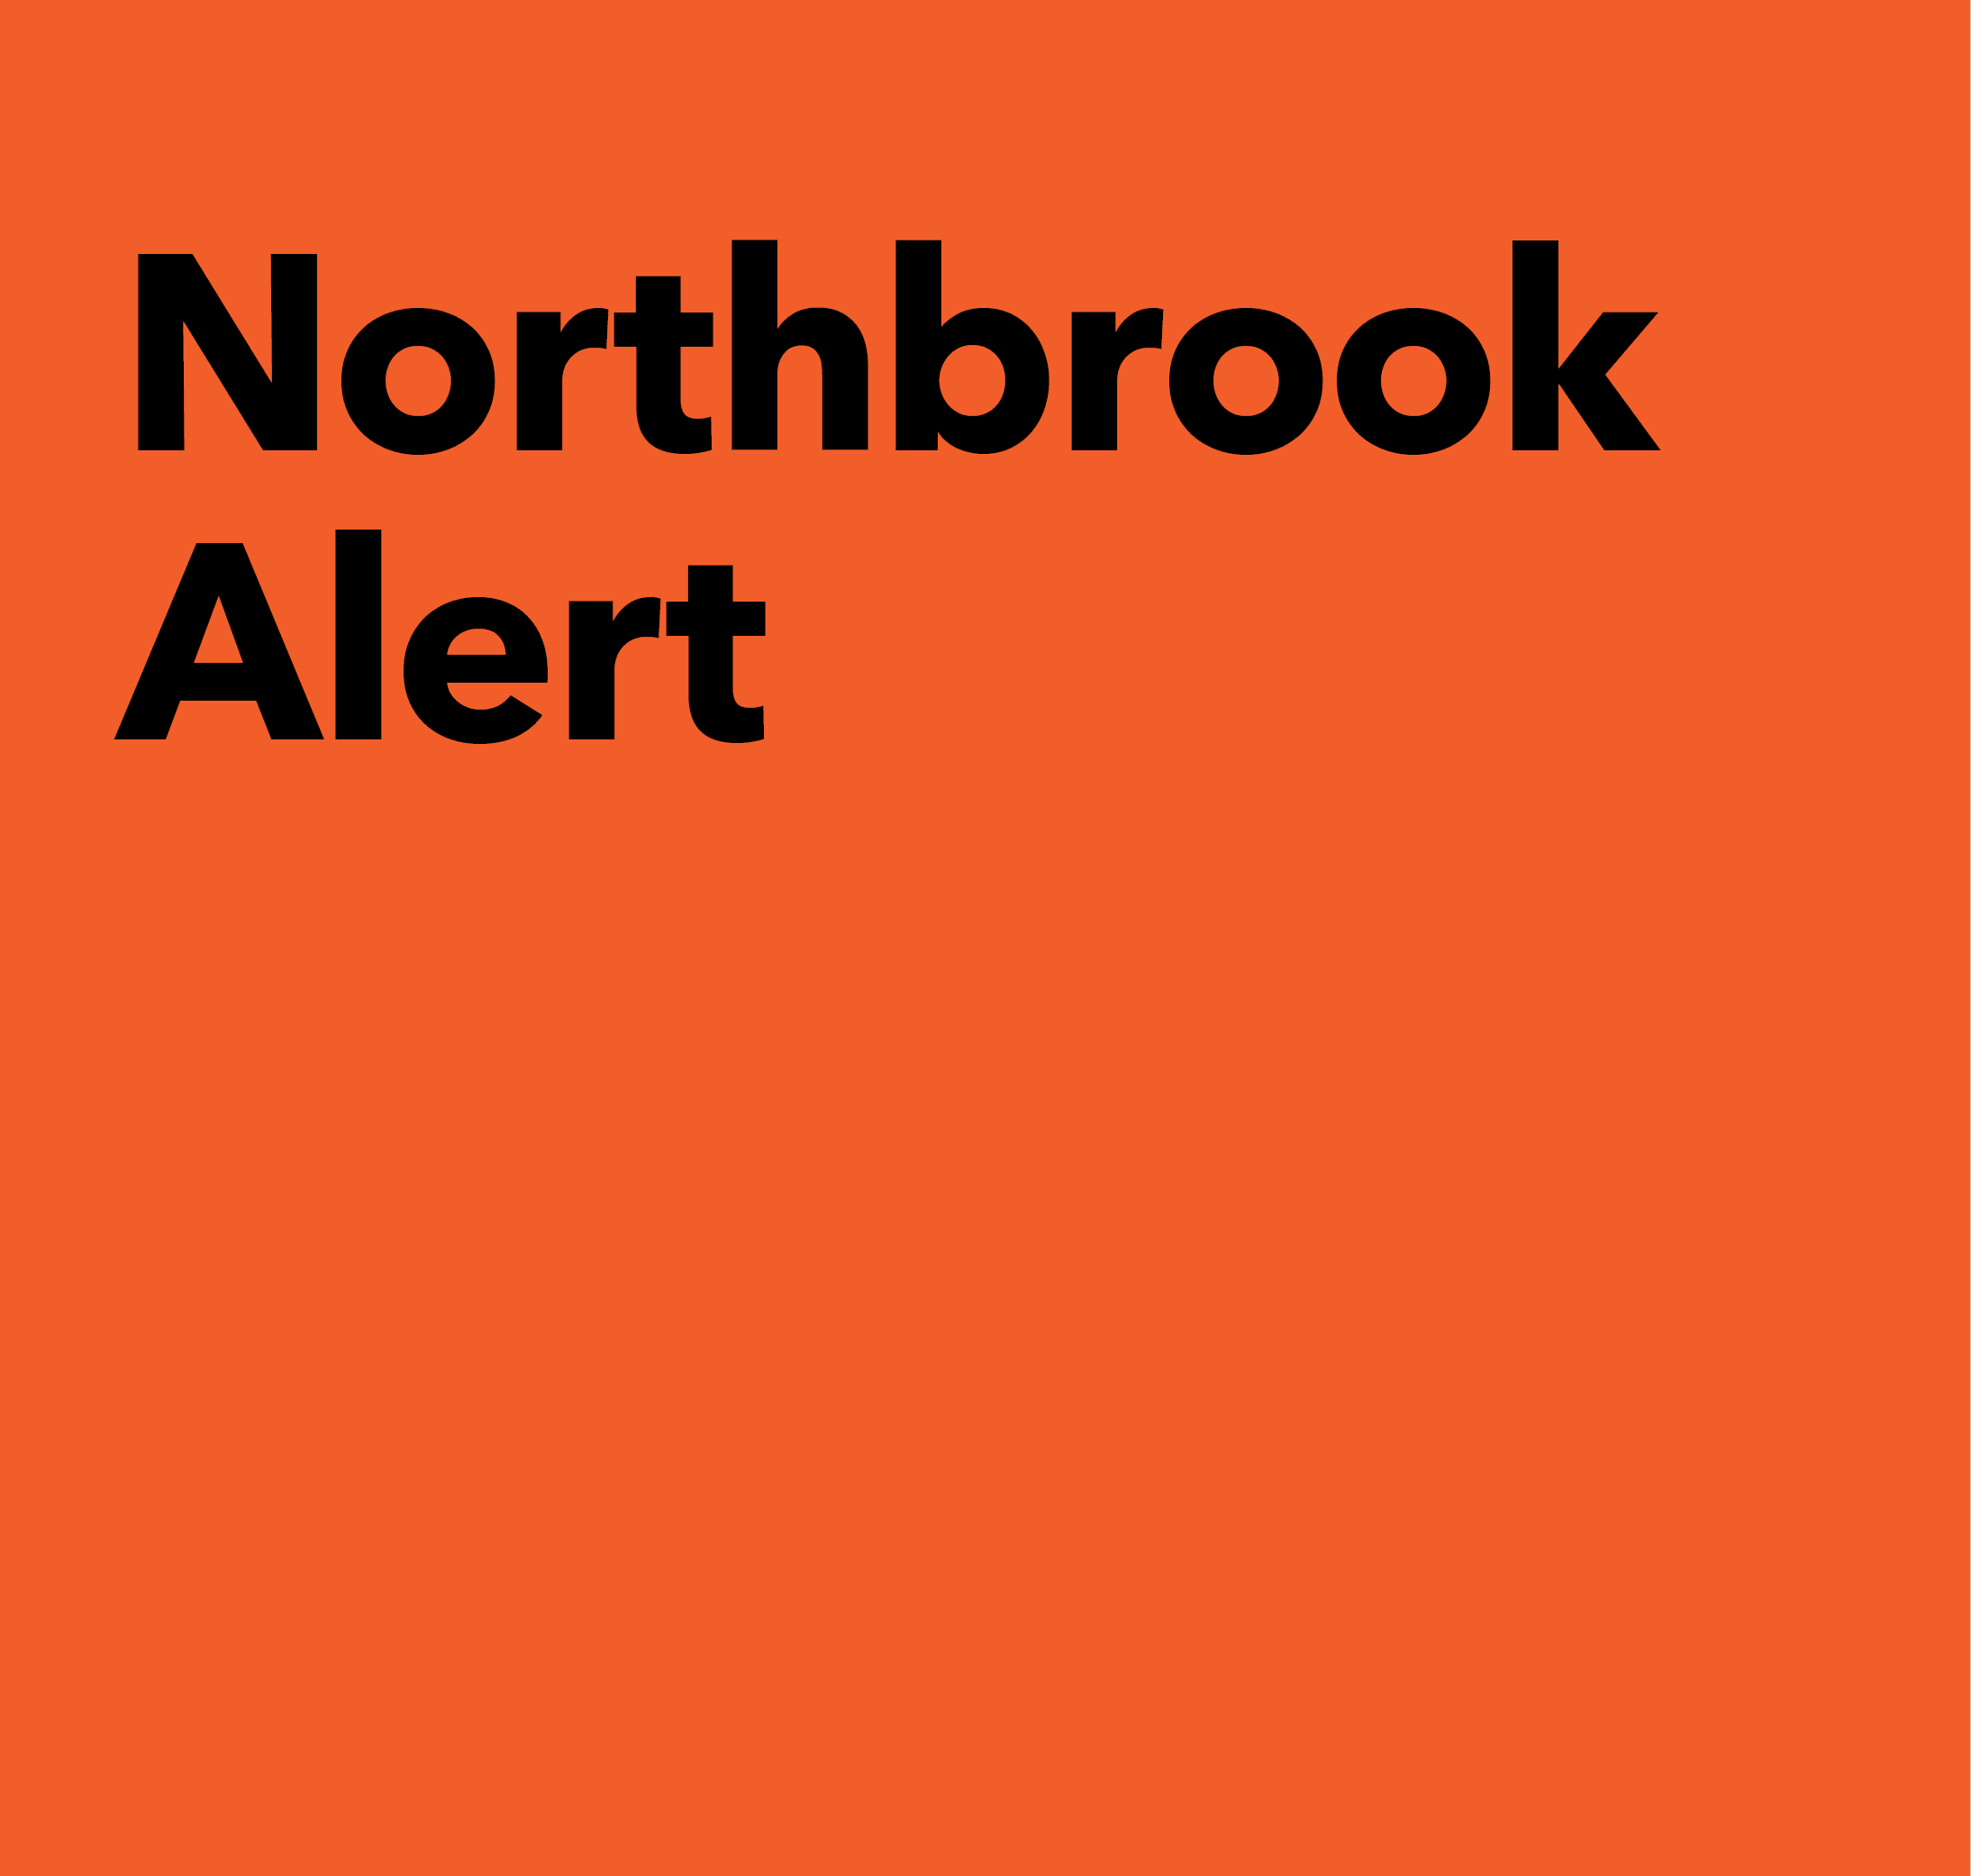 Northbrook Alert